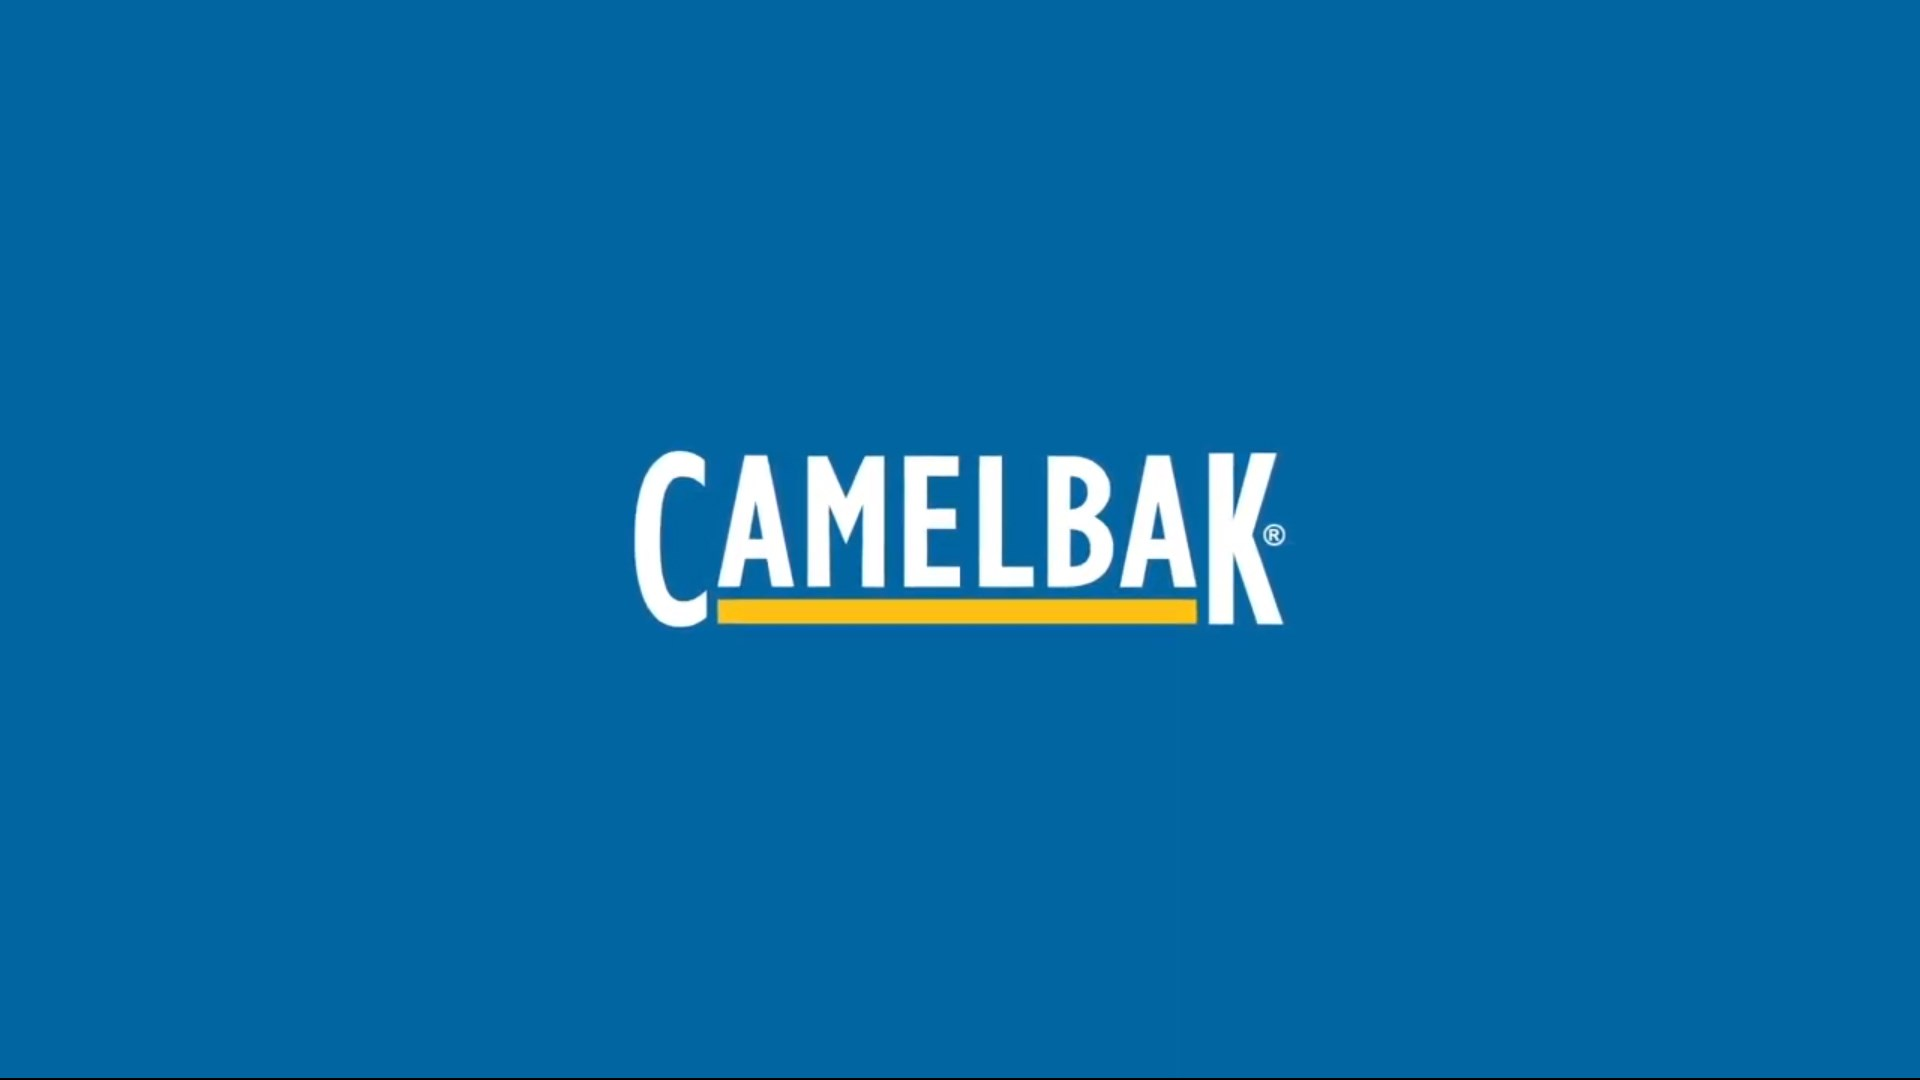 CamelBak Mountain Bike Low Rider Collection